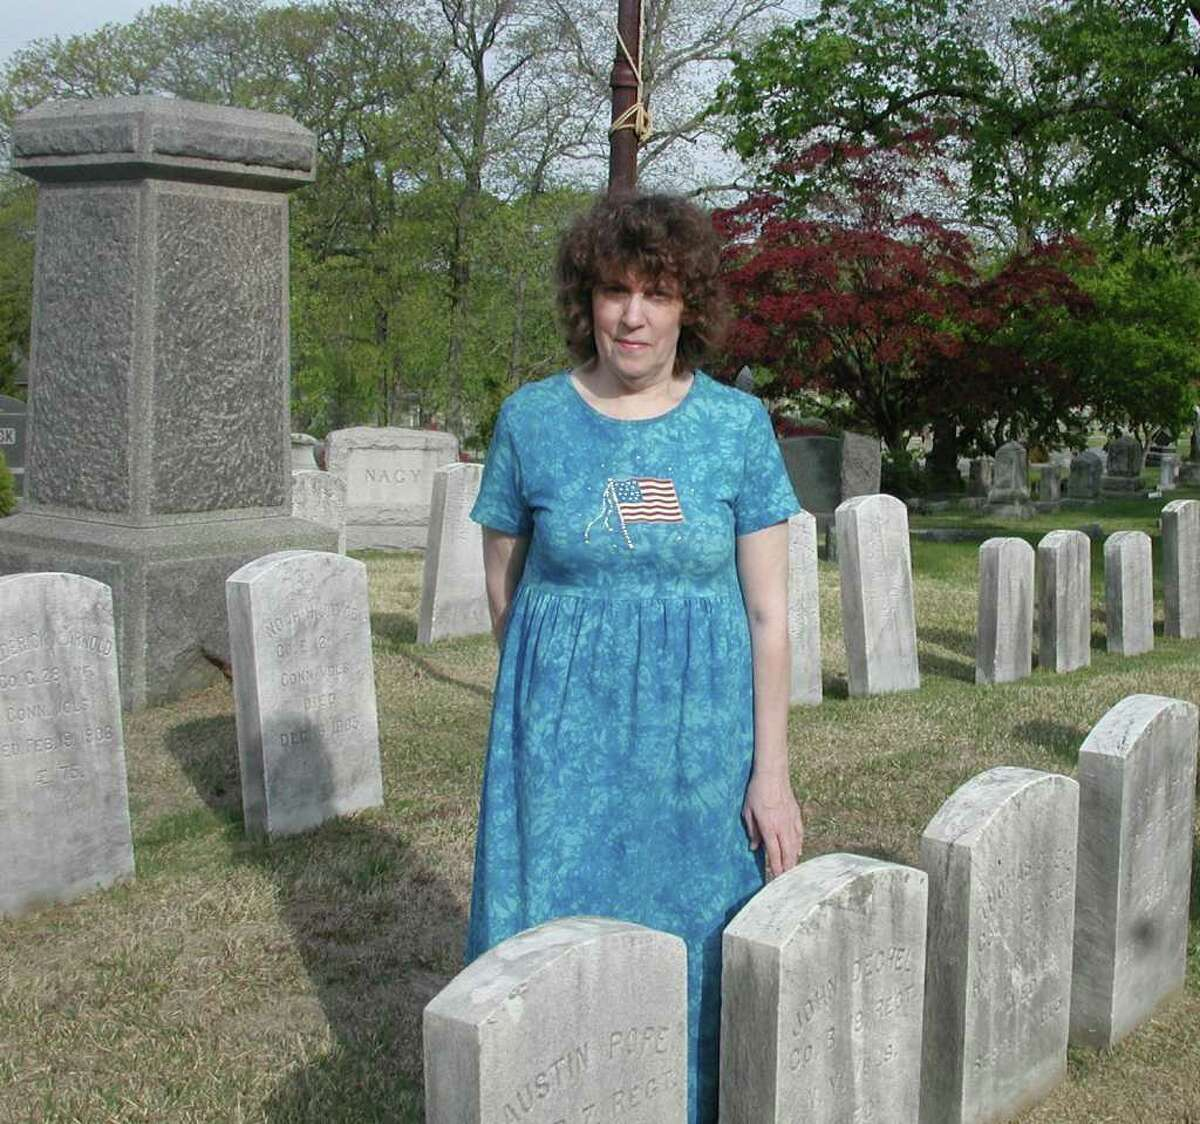 Norwalk historians Madeleine Eckert (pictured) and her husband, Ed, will lead a tour of the Civil War Soldiers Plot at Riverside Cemetery on Saturday, May 28. The tour is just one of many events celebrating Memorial Day in the region.